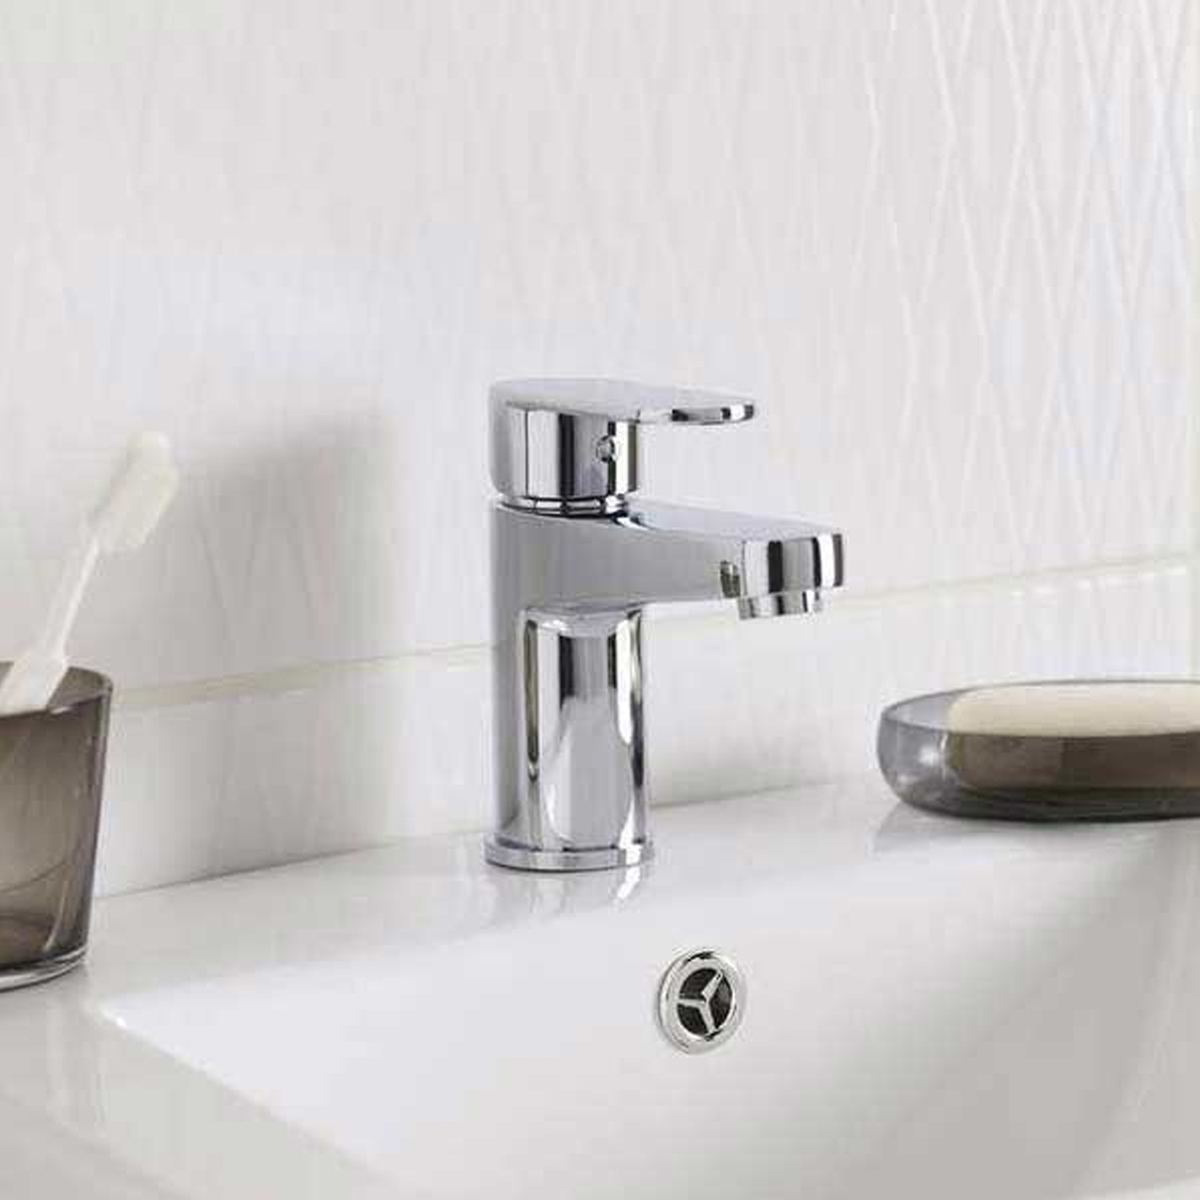 Ultra Ratio Mono Basin Mixer Tap and Bath Filler Tap, Chrome-0